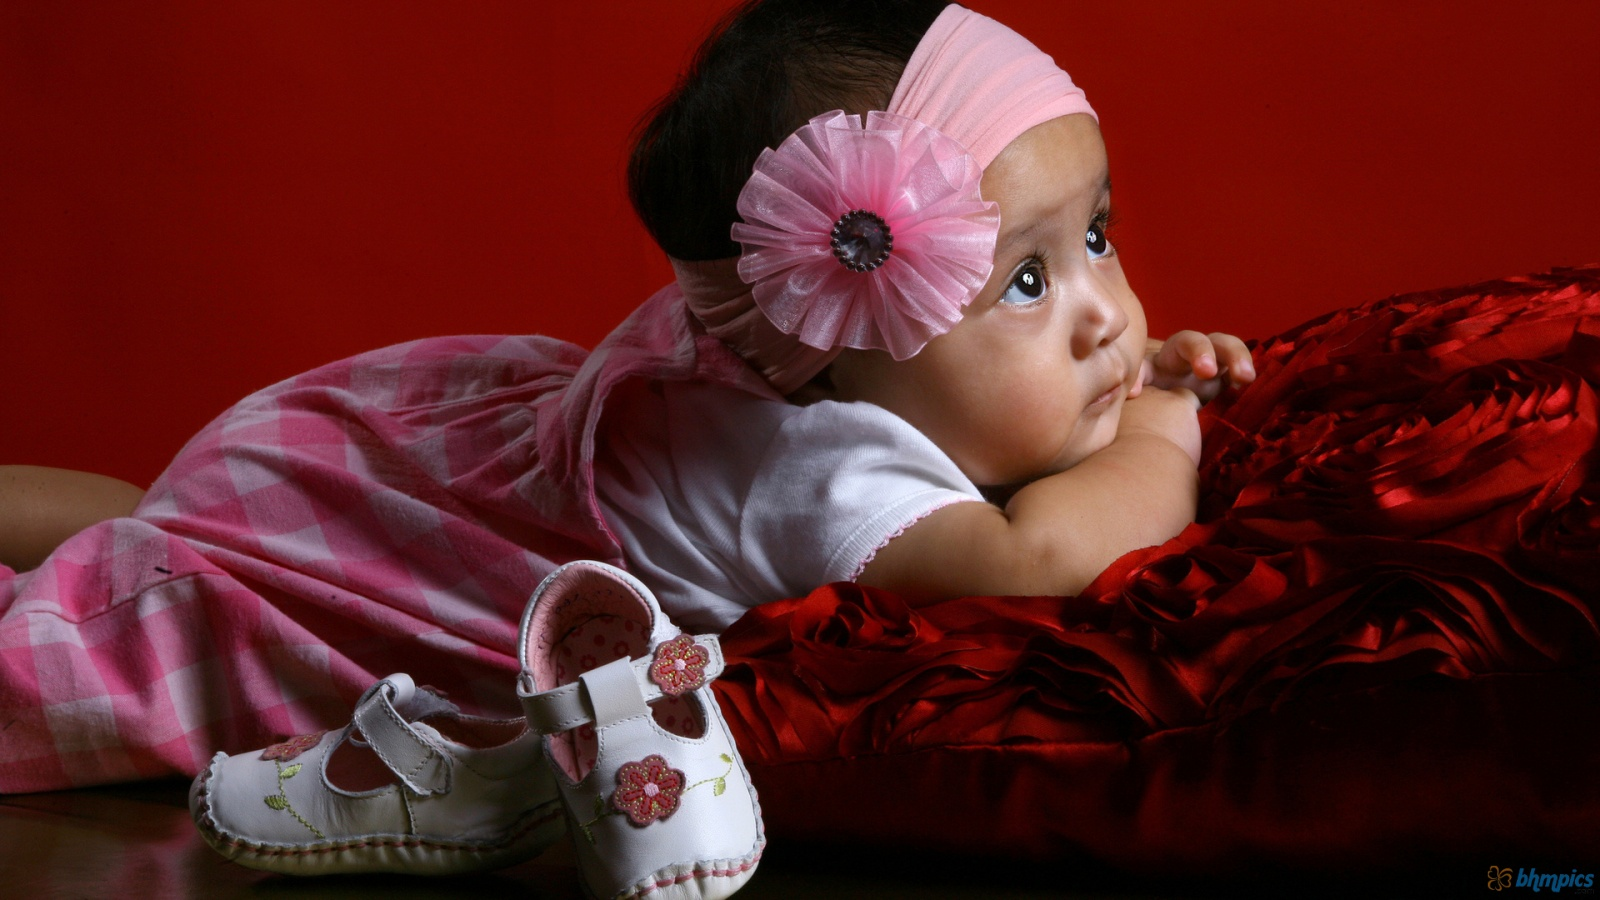 download sports wallpaper valentine day wallpaper cute baby 1600x900